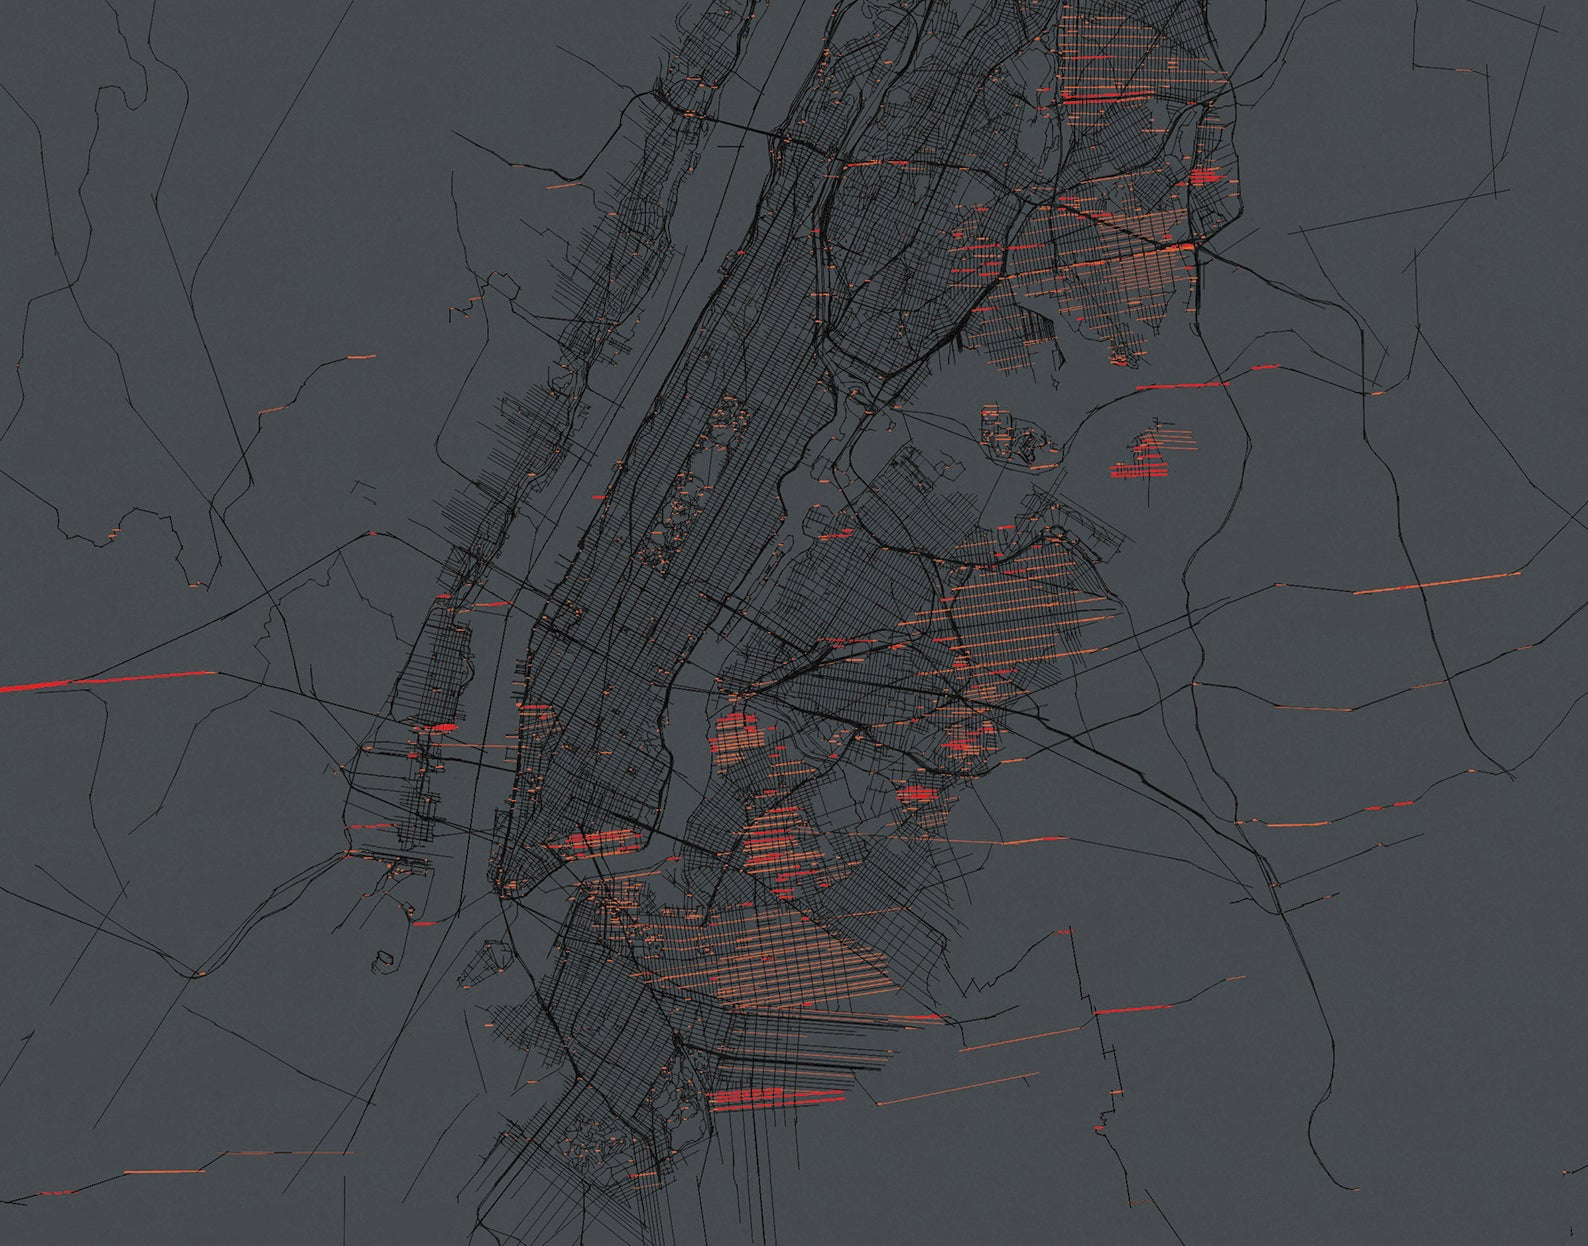 data visualization of streets illuminated by sunset in New York City